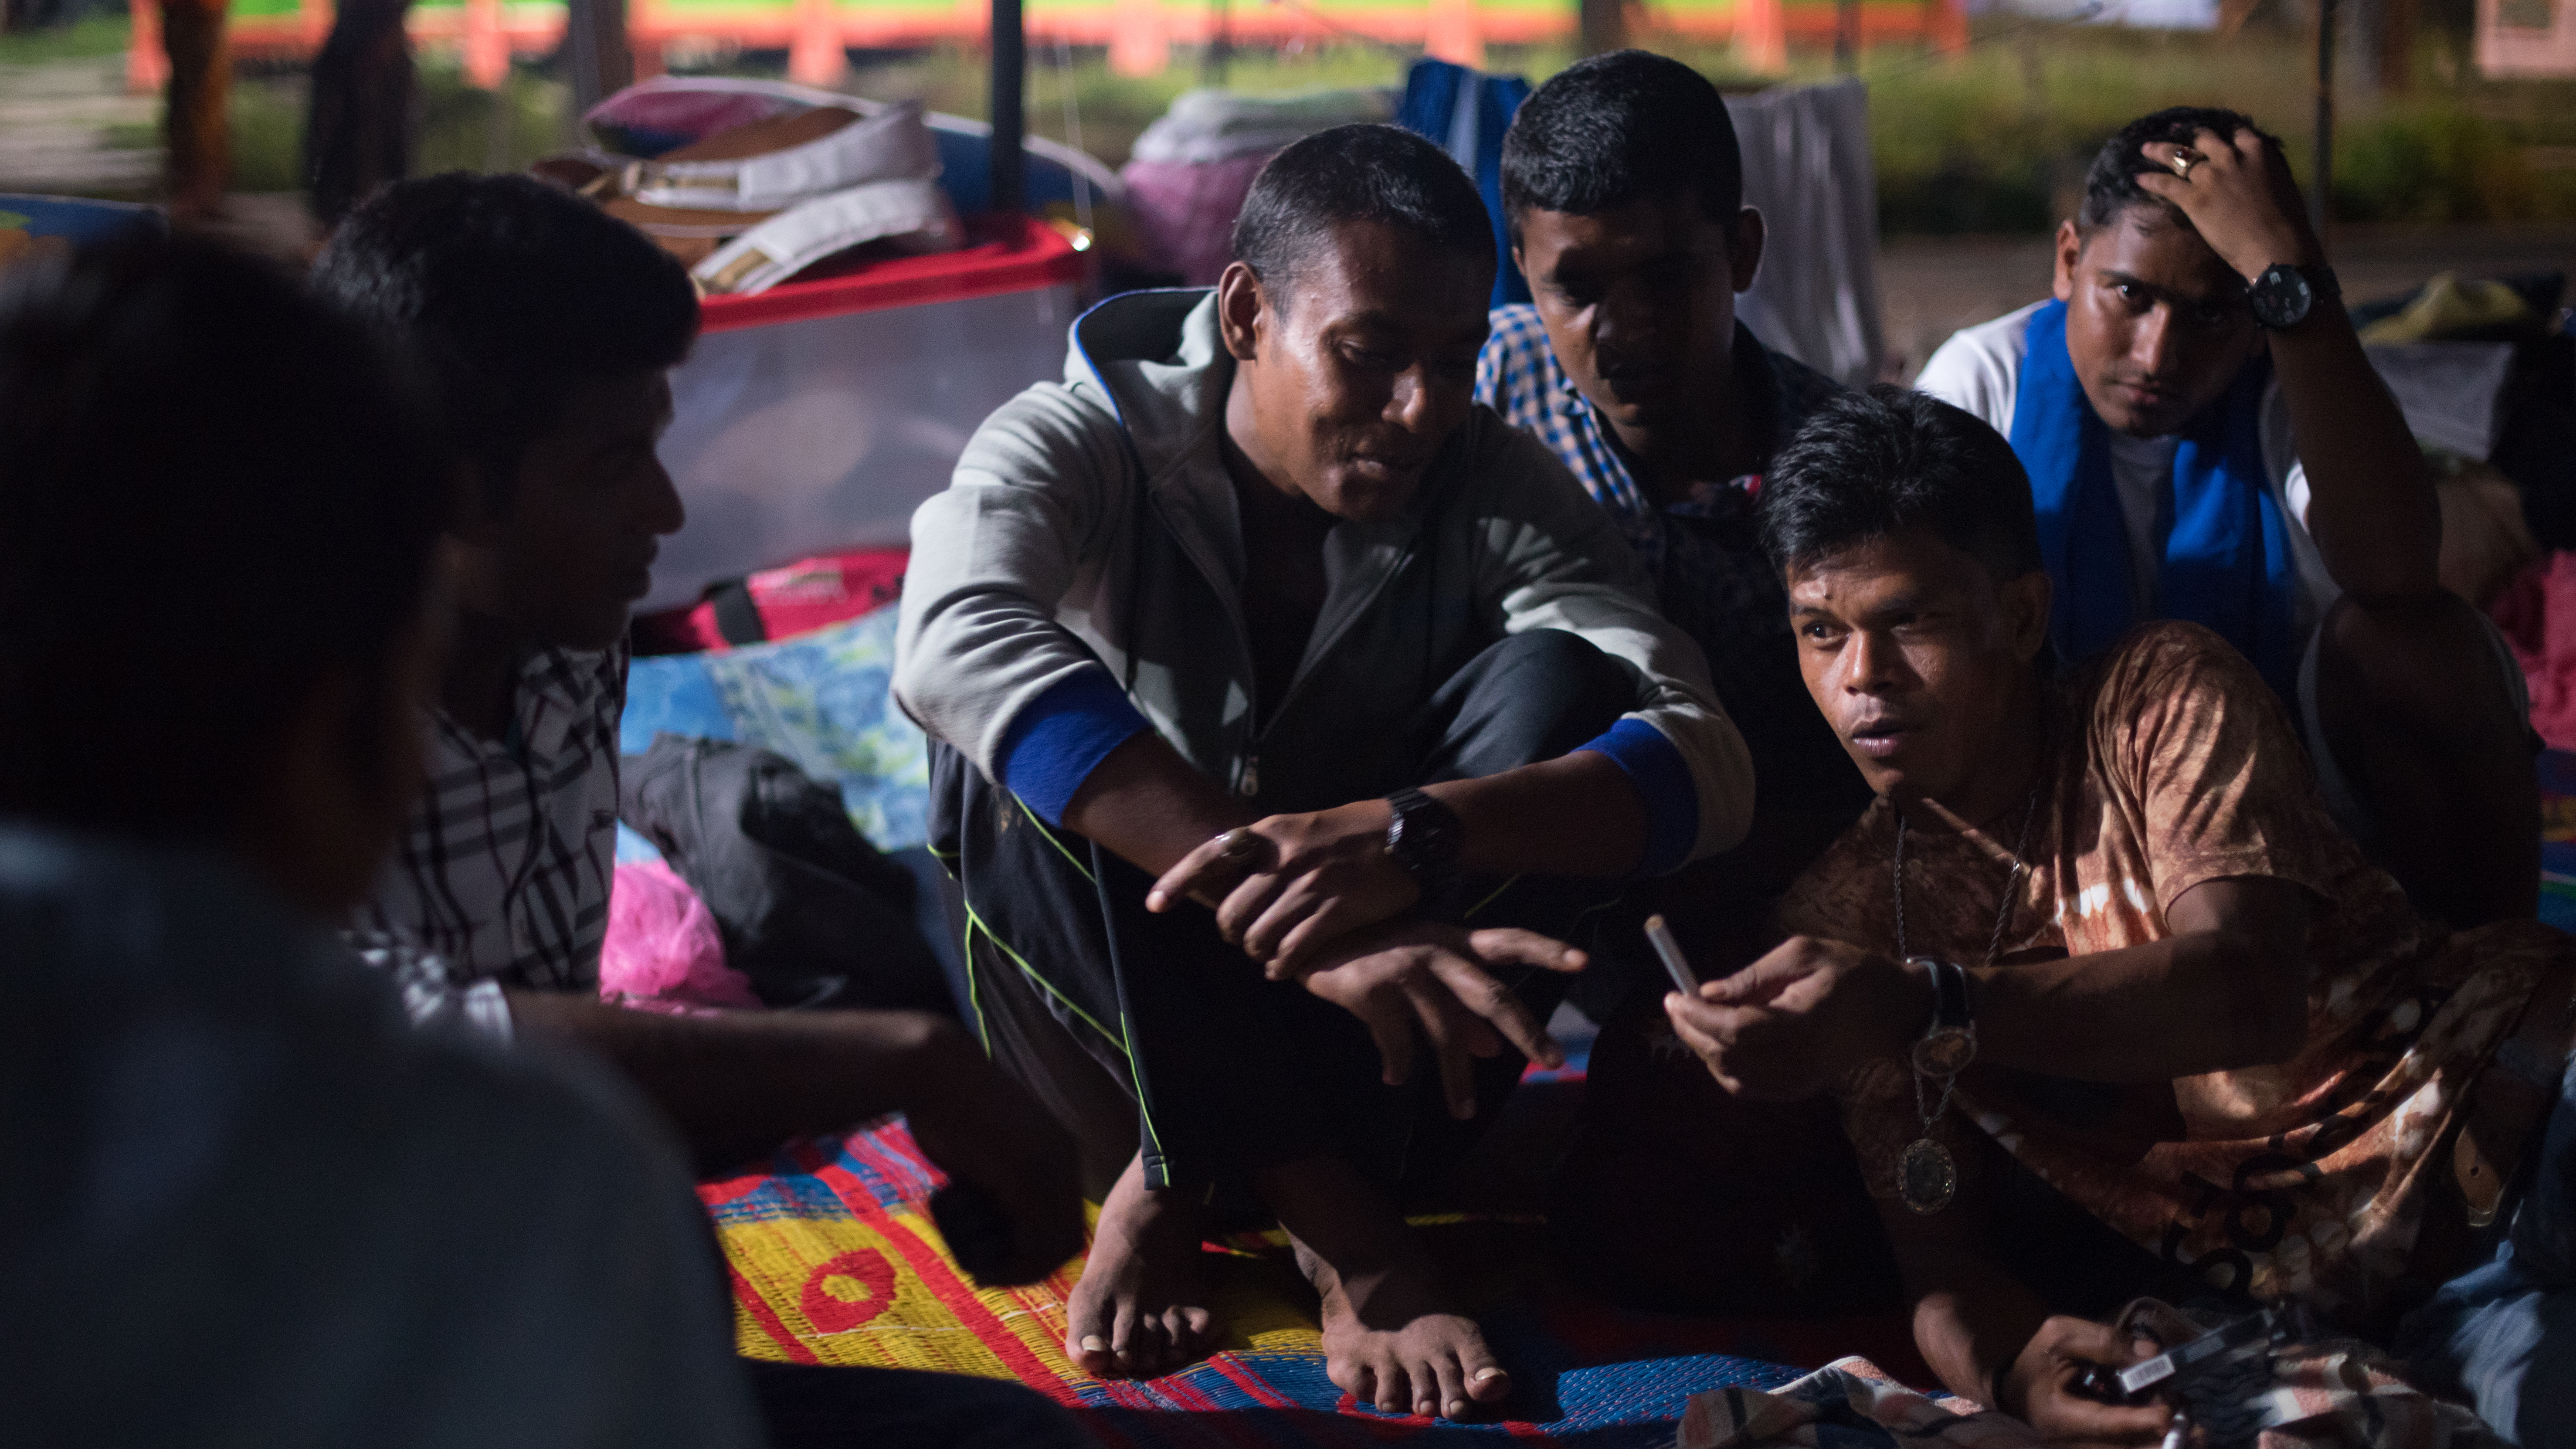 Taufik (bottom right) is a fisherman who saved the Rohingya and Bangladeshi from sea in May. Even though they aren't real family, he says, he loves them and he feels a responsibility to take care of them. He visits the Bayeun, East Aceh, Indonesia refugee